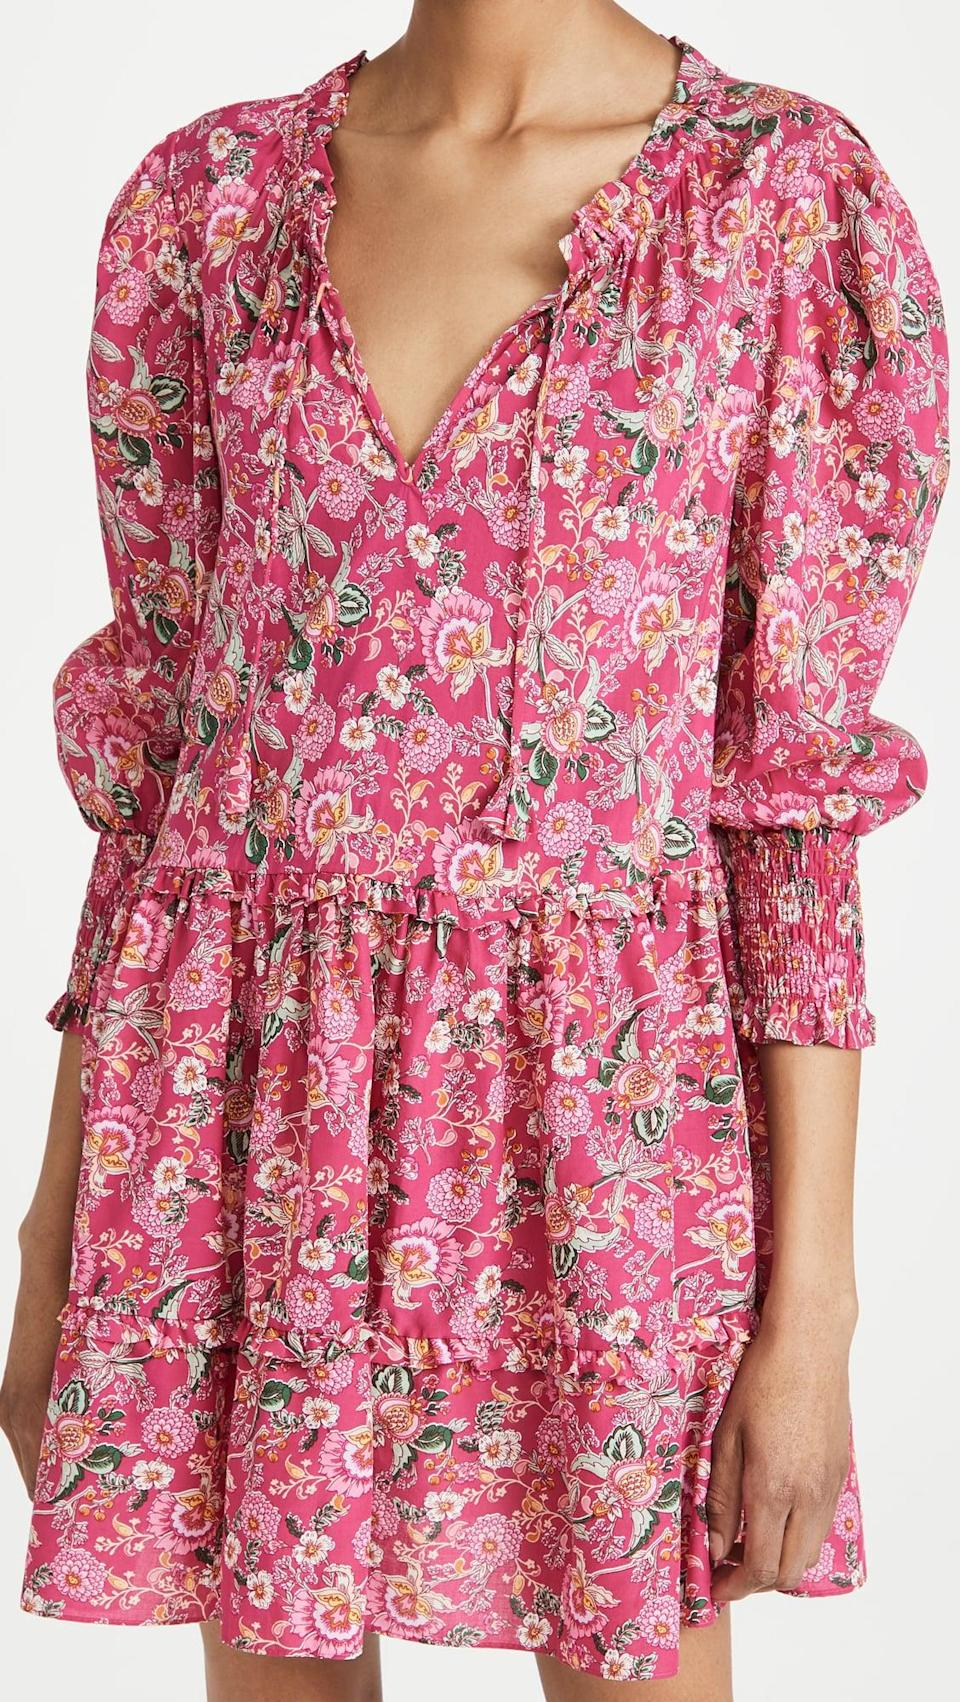 <p>The print on this breezy <span>Misa Maya Dress</span> ($320) is so beautiful, and it's so easy to stay.</p>